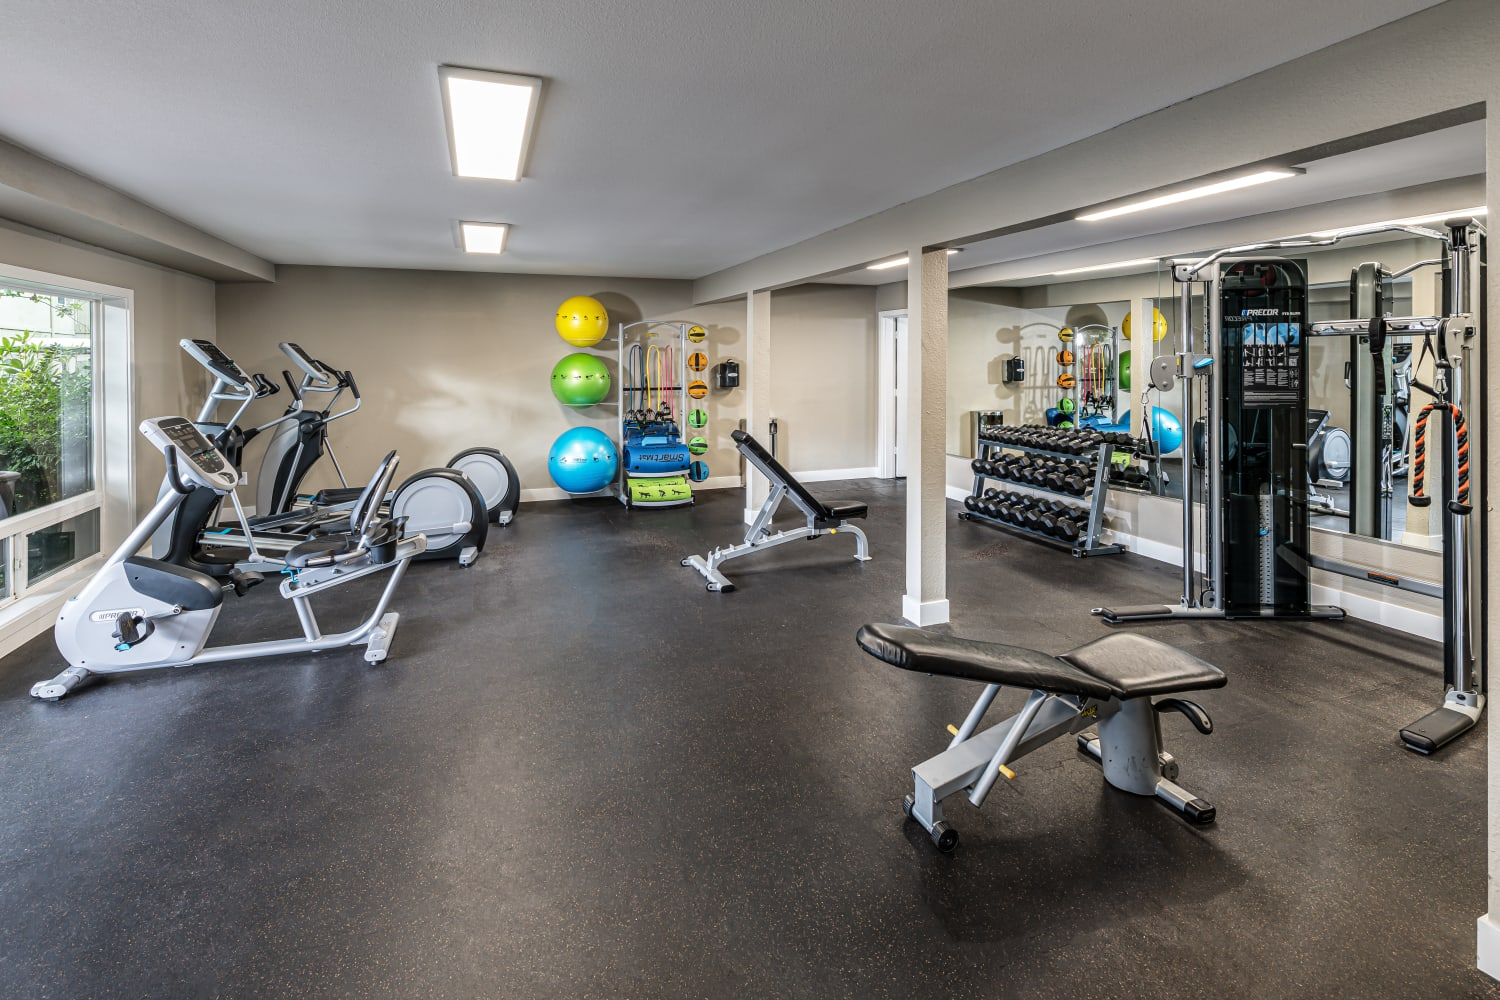 Fitness Center with variety of equipment at Edgewood Park Apartments in Bellevue, Washington